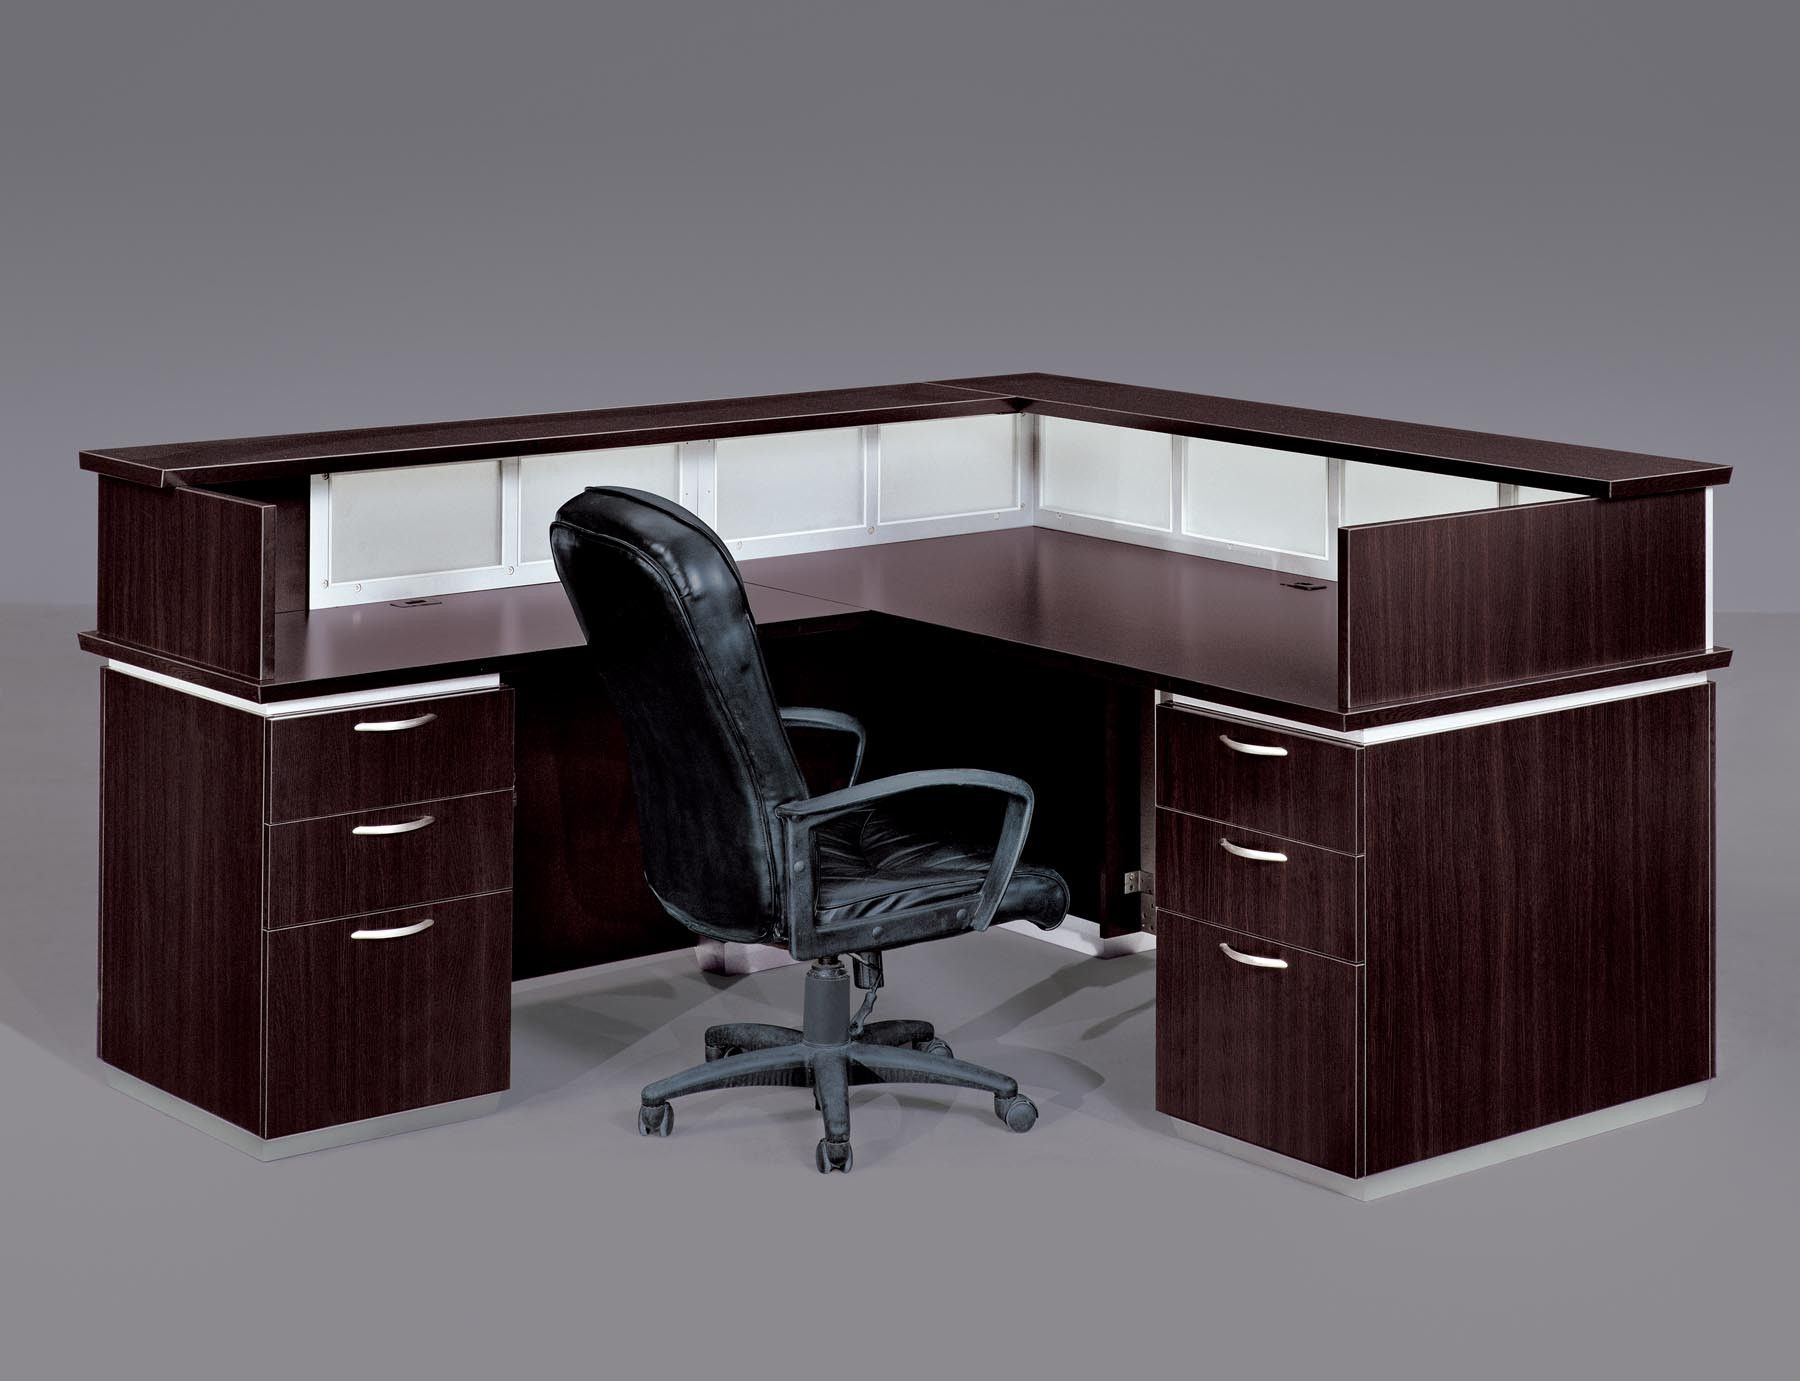 official photos d33b5 07bb0 Reception Desk - Get a quote for your next office furniture ...